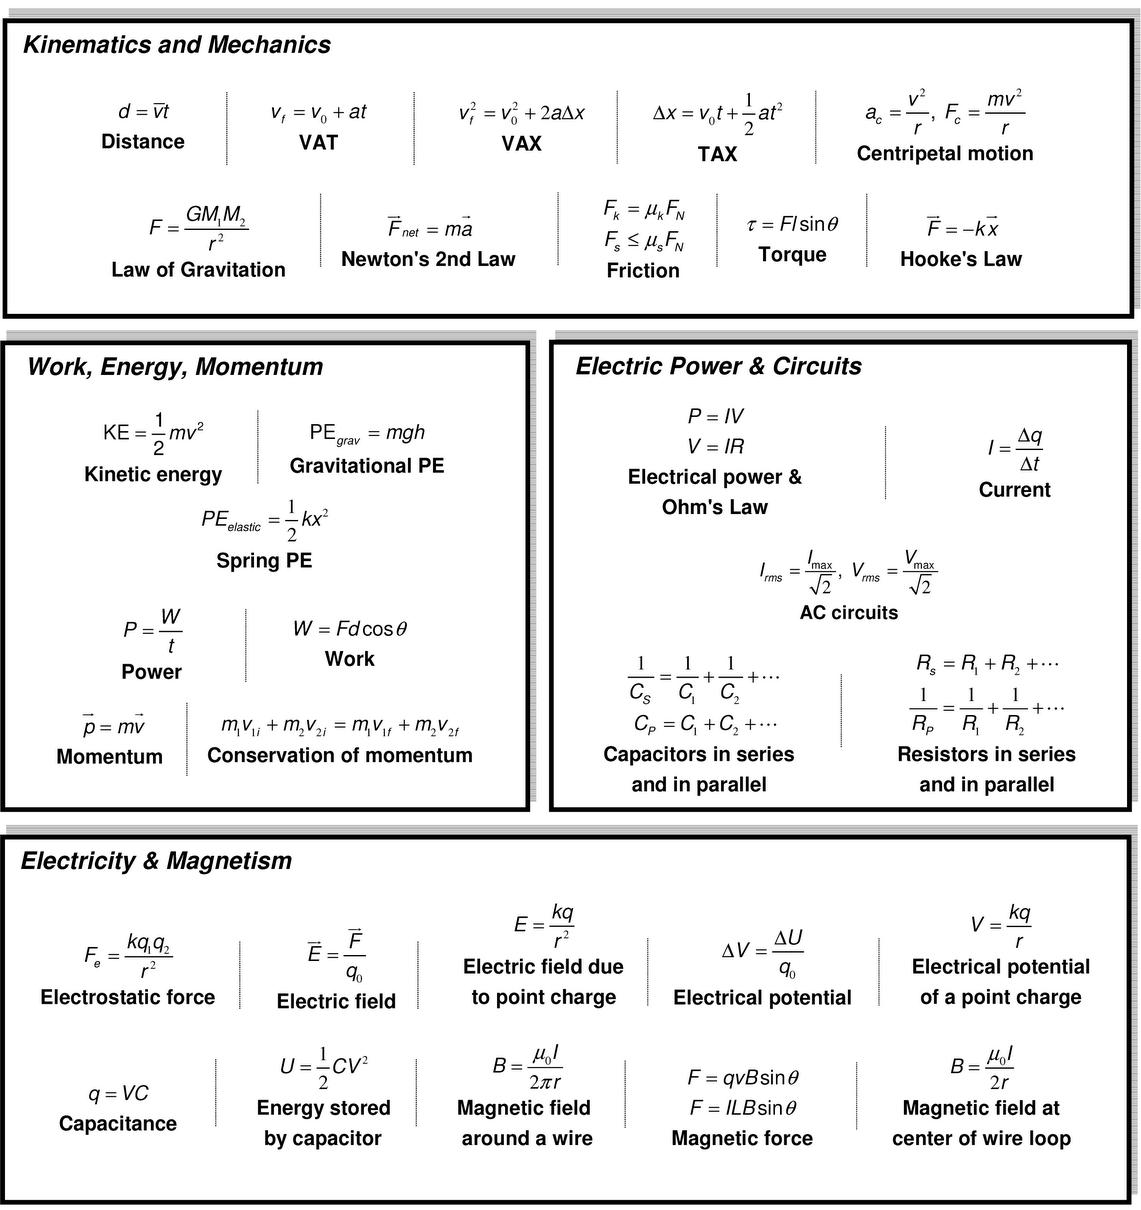 Physics Equation Sheet